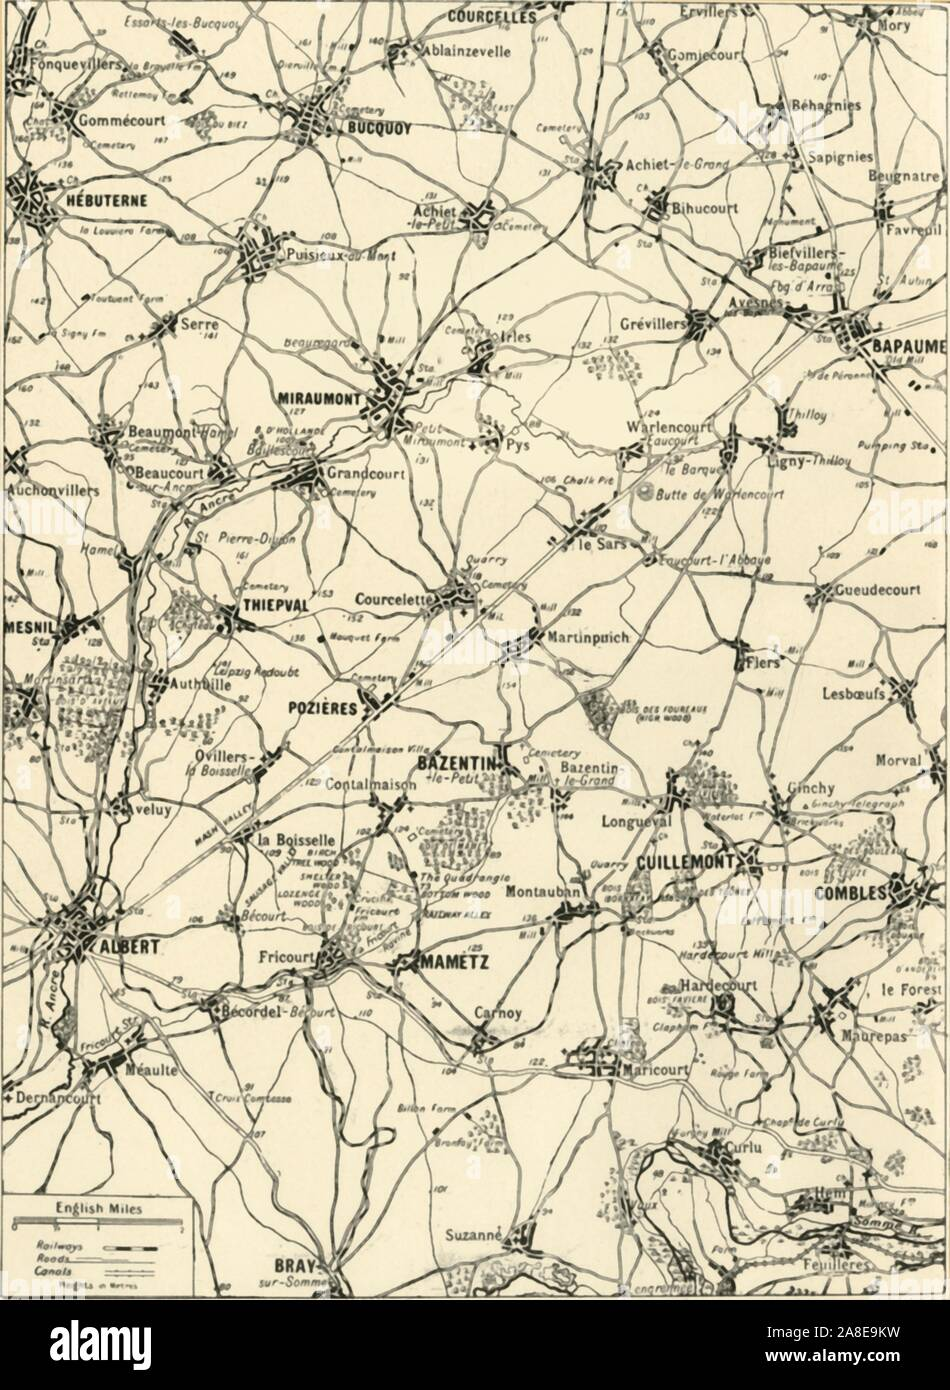 """'Large Scale Map of the Area of Victory in the """"Great Push"""" of 1916', 1917. The Battle of the Somme began on 1st July 1916, with General Douglas Haig's offensive known as the Great Push, the victories great, the horrors were greater. From """"The War Illustrated Album De Luxe - Volume VII. The Autumn Campaign of 1916"""", edited by J. A. Hammerton. [The Amalgamated Press, Limited, London, 1917] Stock Photo"""